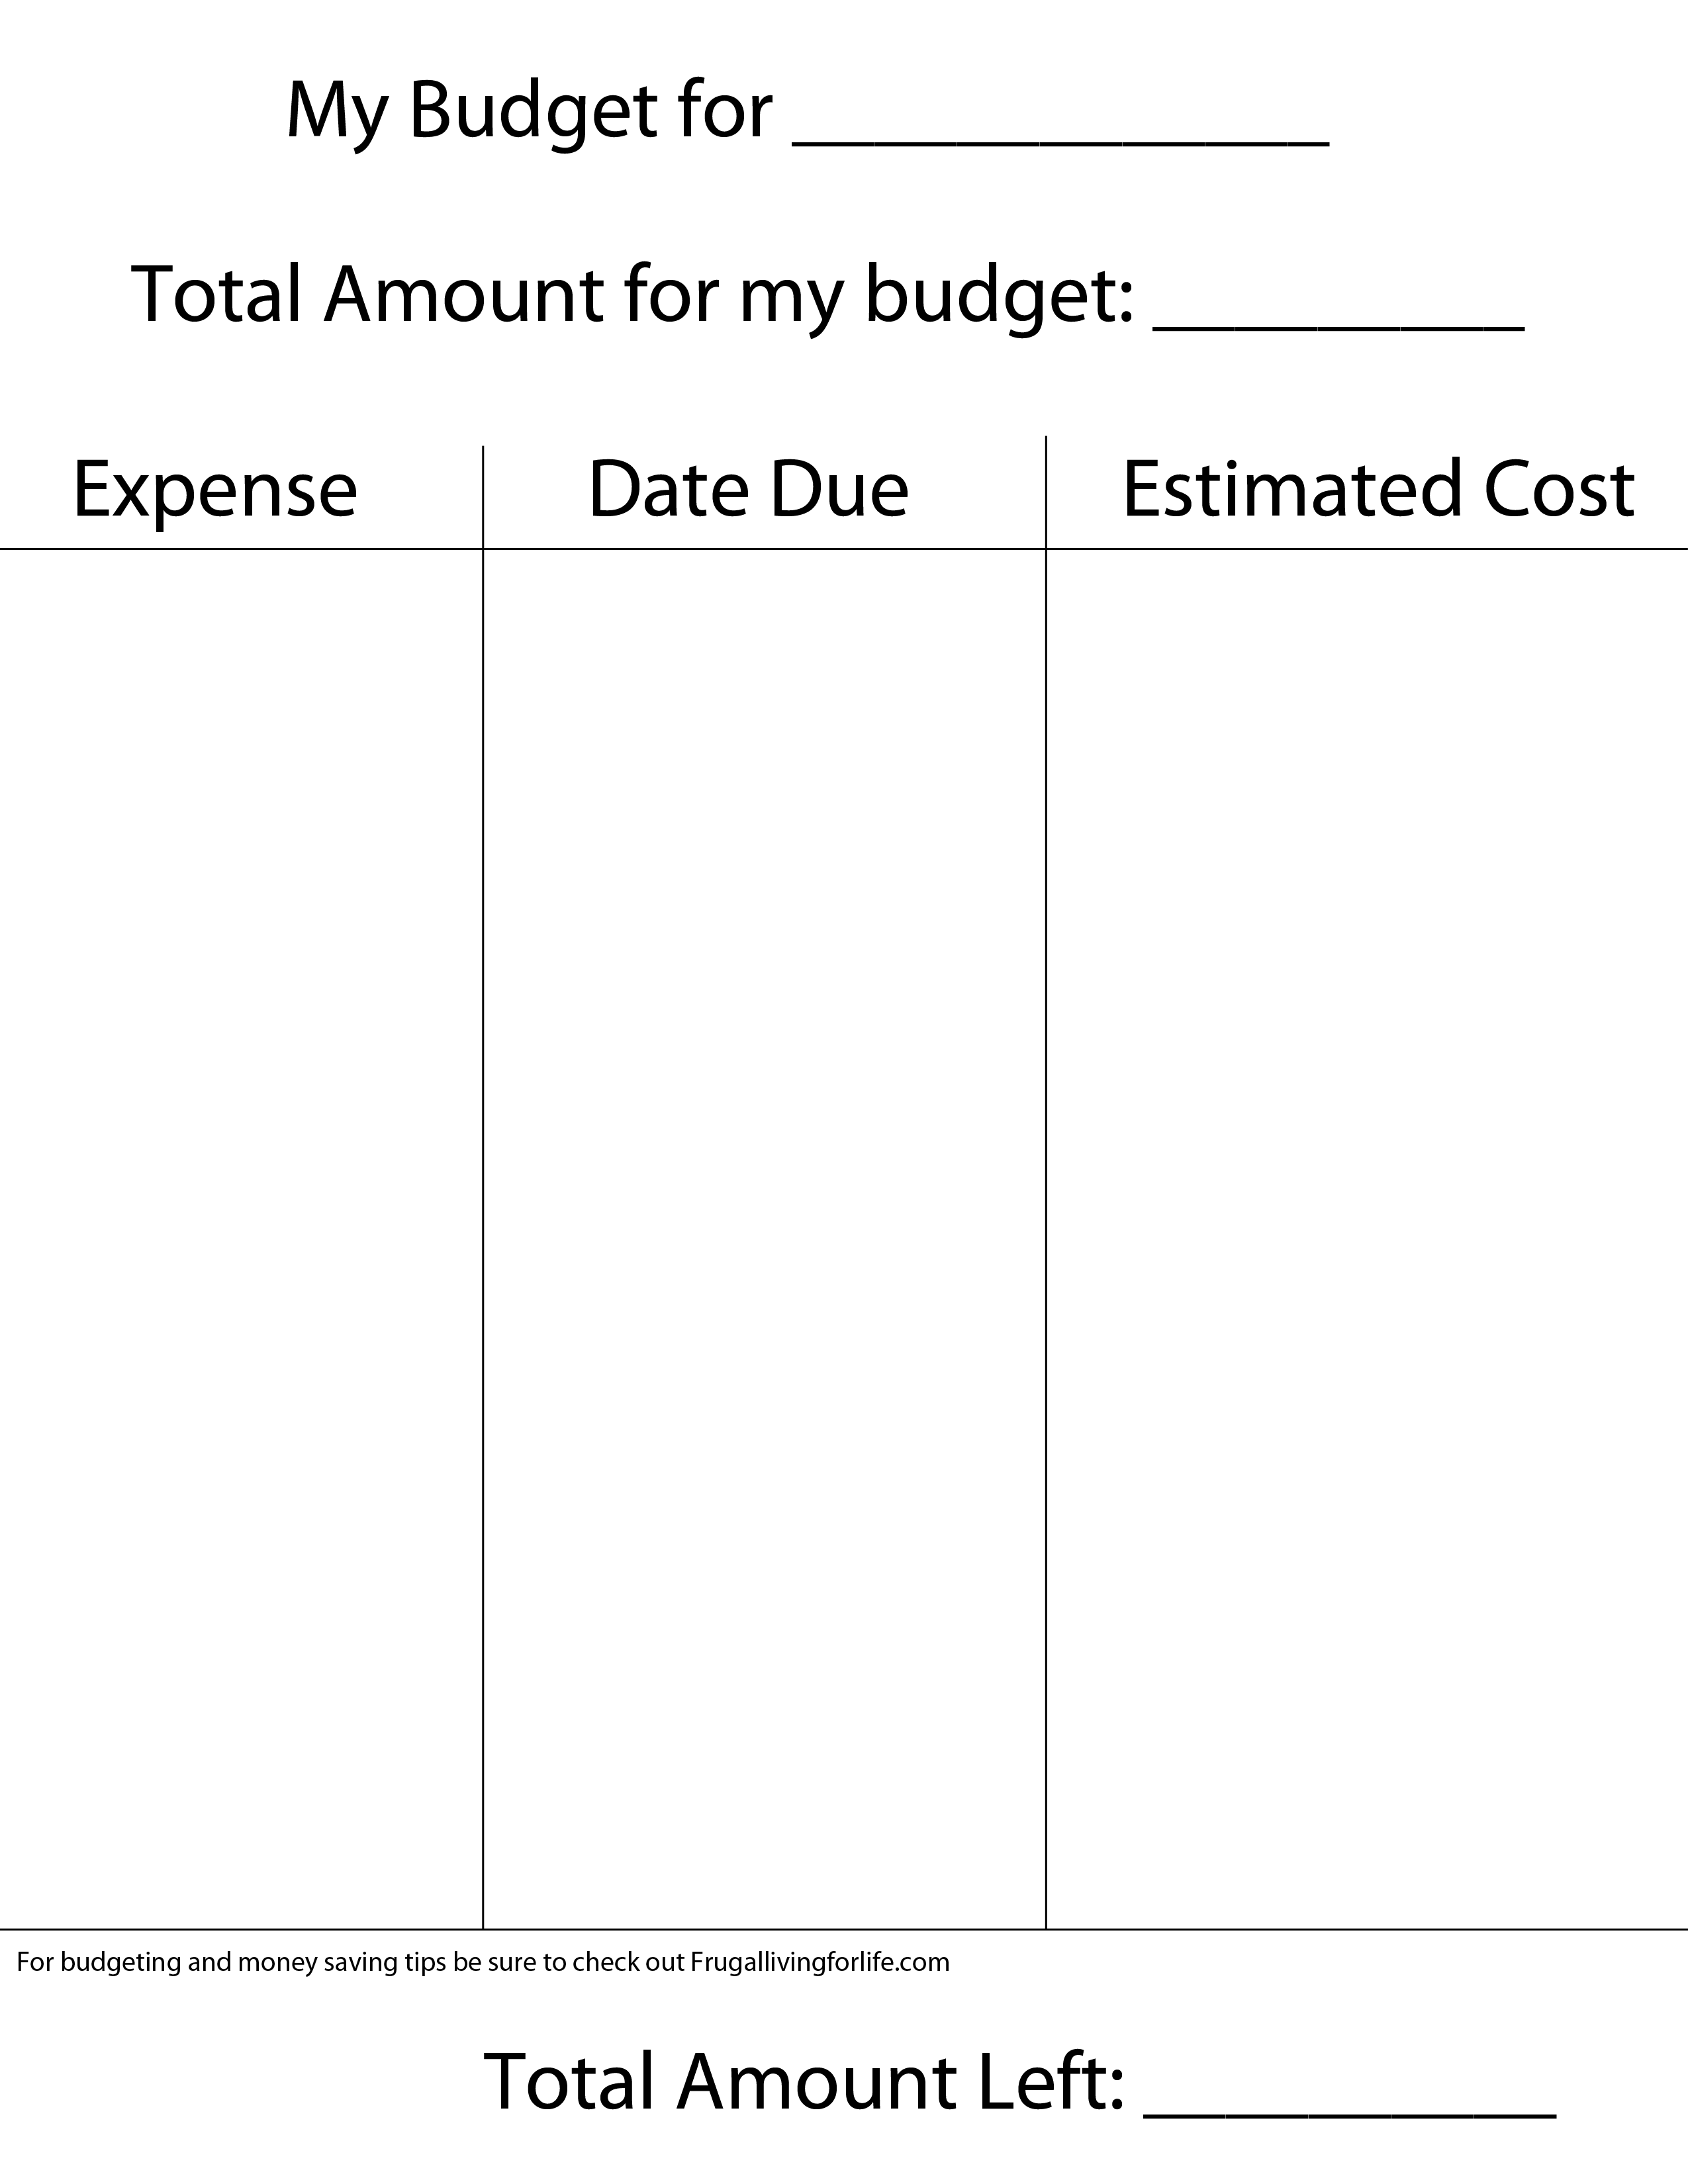 budget-template